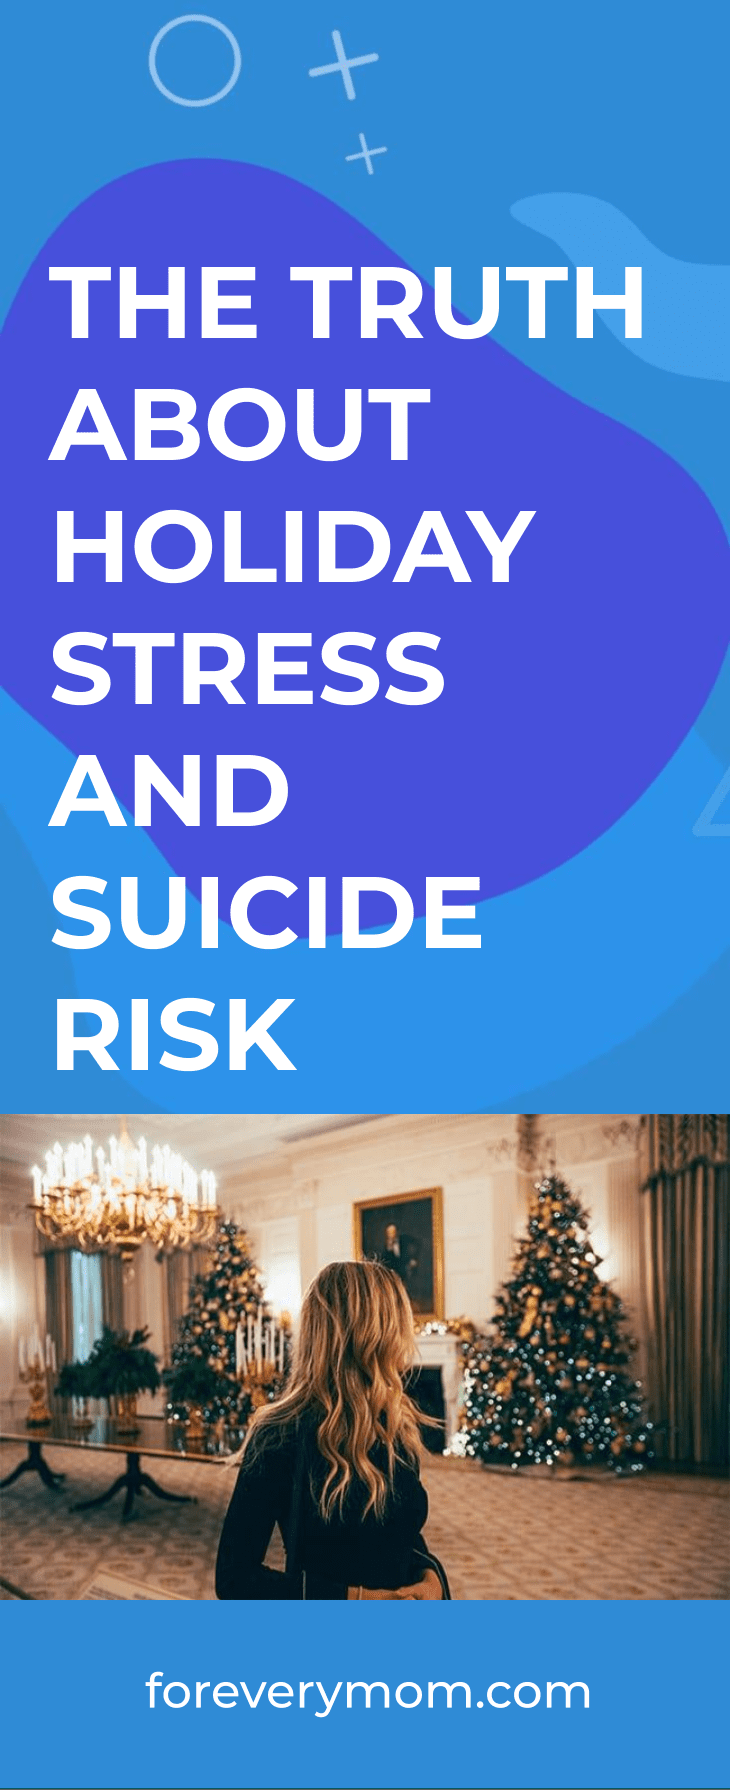 Dealing with traveling, spending more money, being around family…it all adds up to negative holiday stress. So, what is a person to do about all this stress? #HolidayStress #Stress #Christmas #HolidaySeason #Suicide #SuicidePrevention #MentalHealth #MostWonderfulTimeOfTheYear